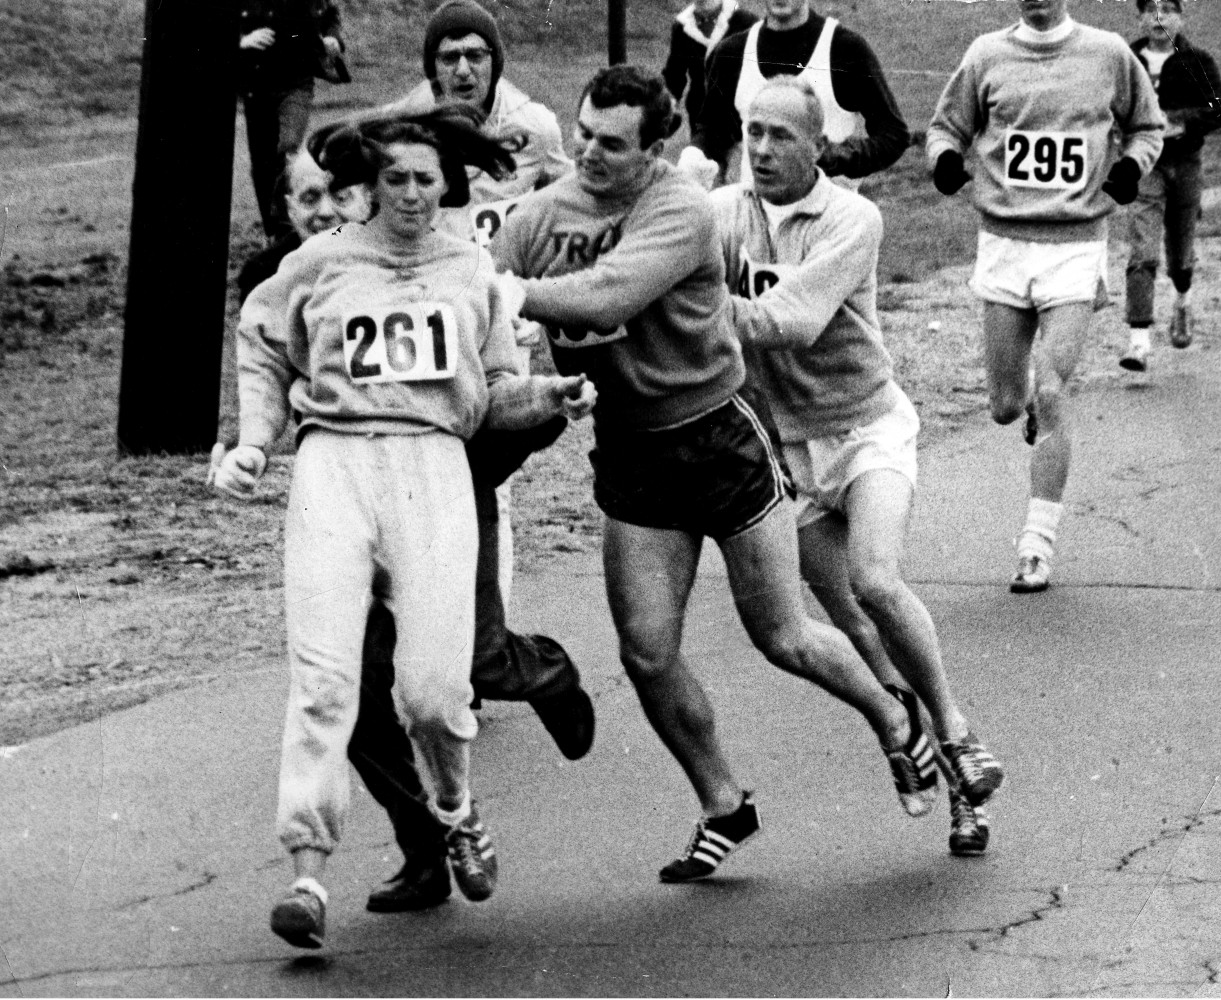 Image result for photo of a woman runner being pushed over in the early years